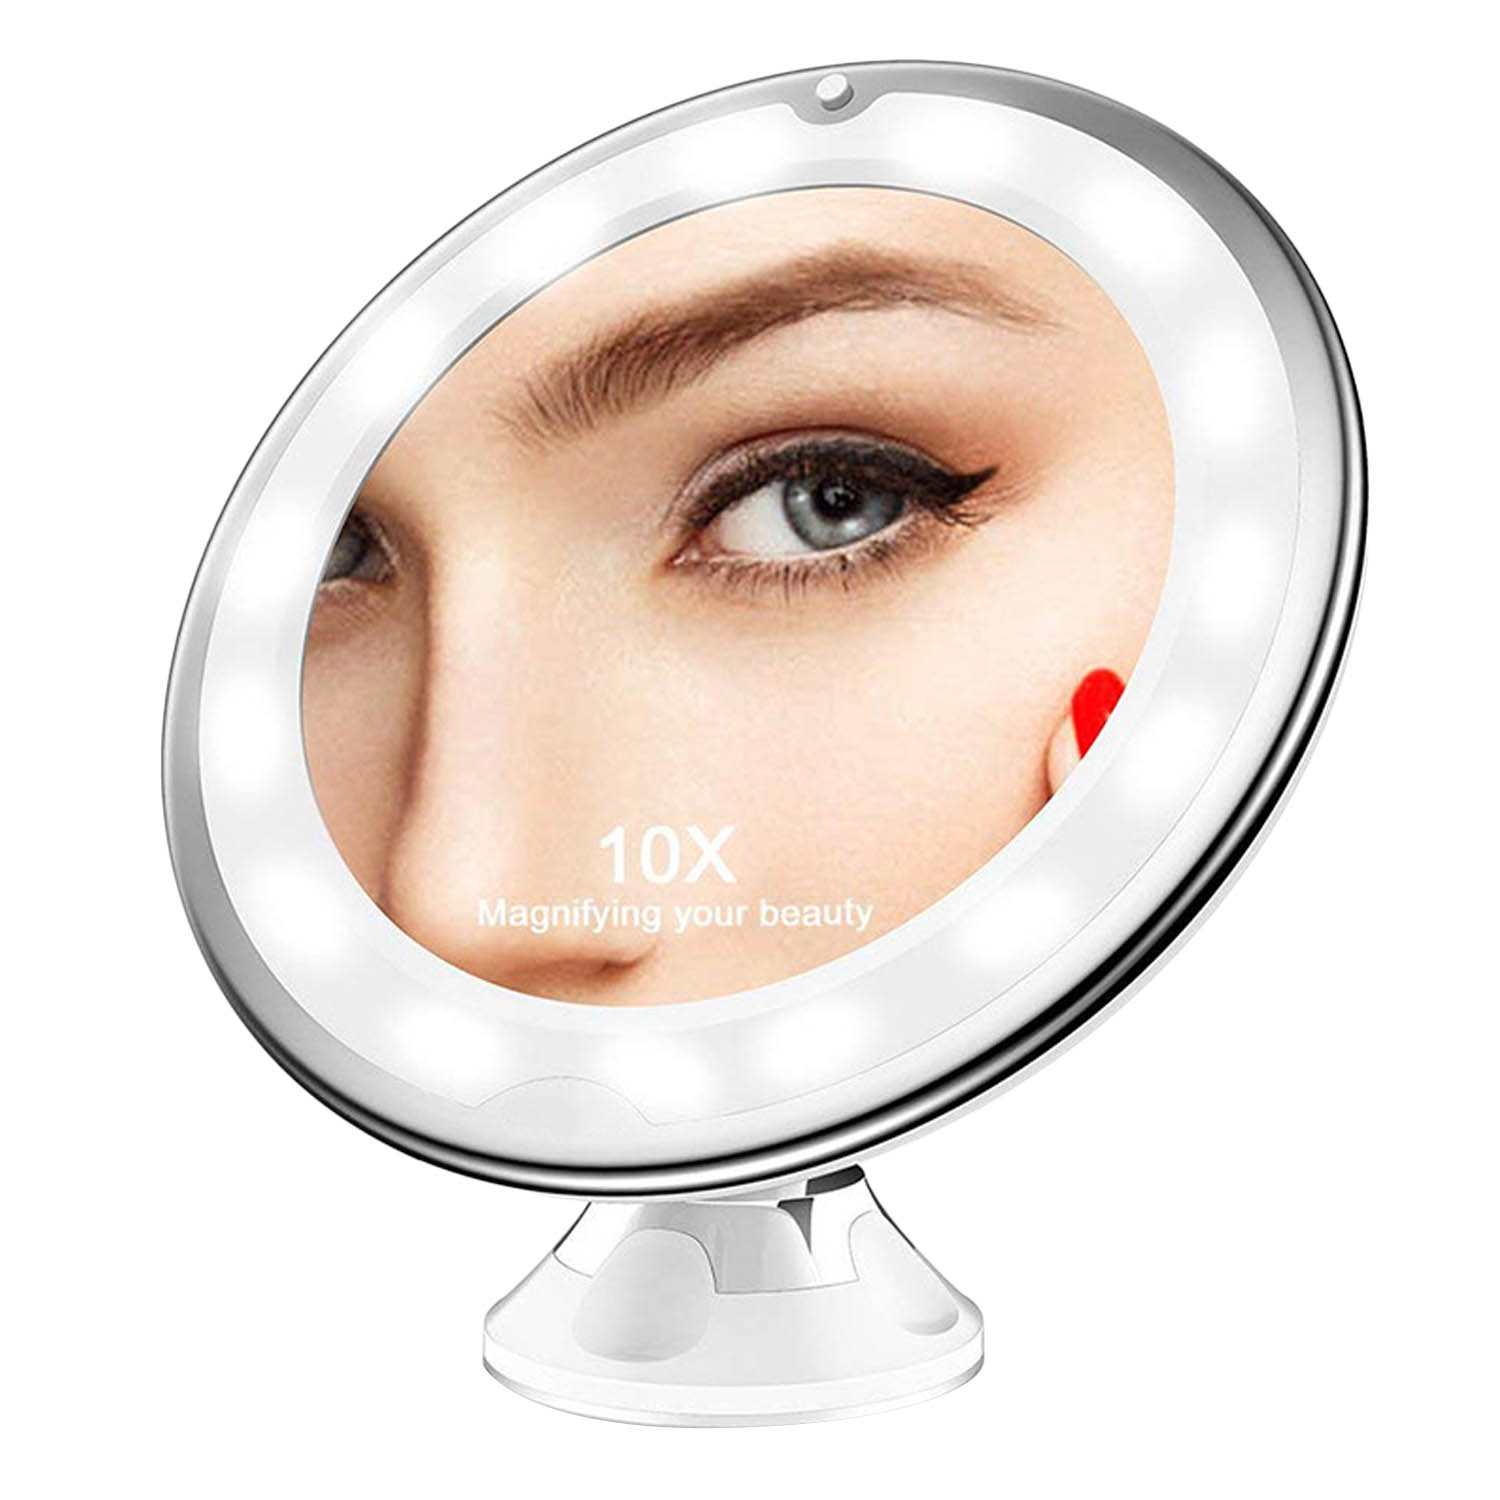 360 Degree Rotation LED 10x Magnification Makeup Mirror with Suction Cup for Bedroom Bathroom Dressing Table Makeup Room 1